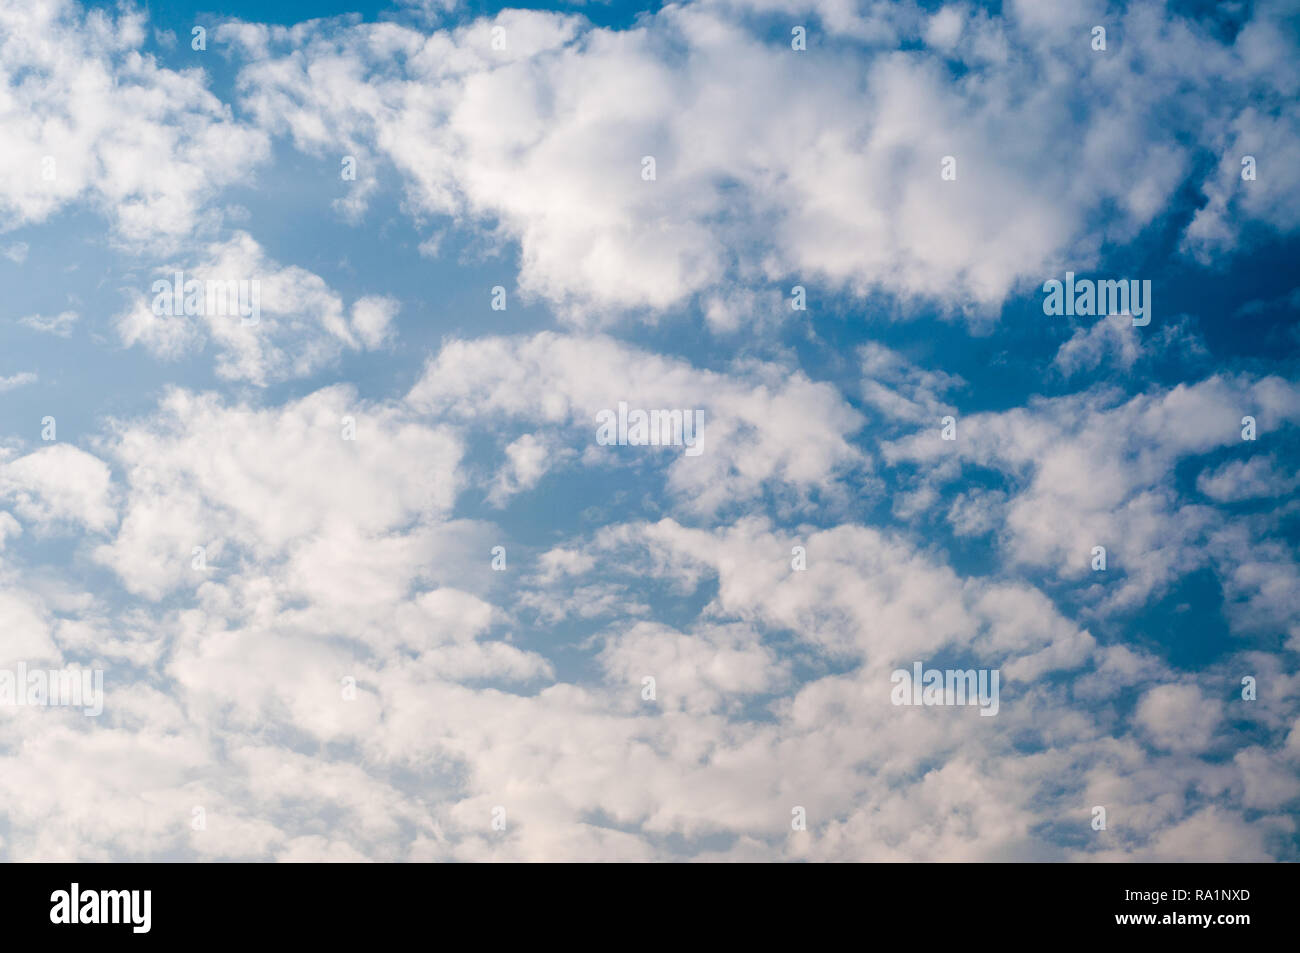 White fluffy clouds and blue sky - Stock Image